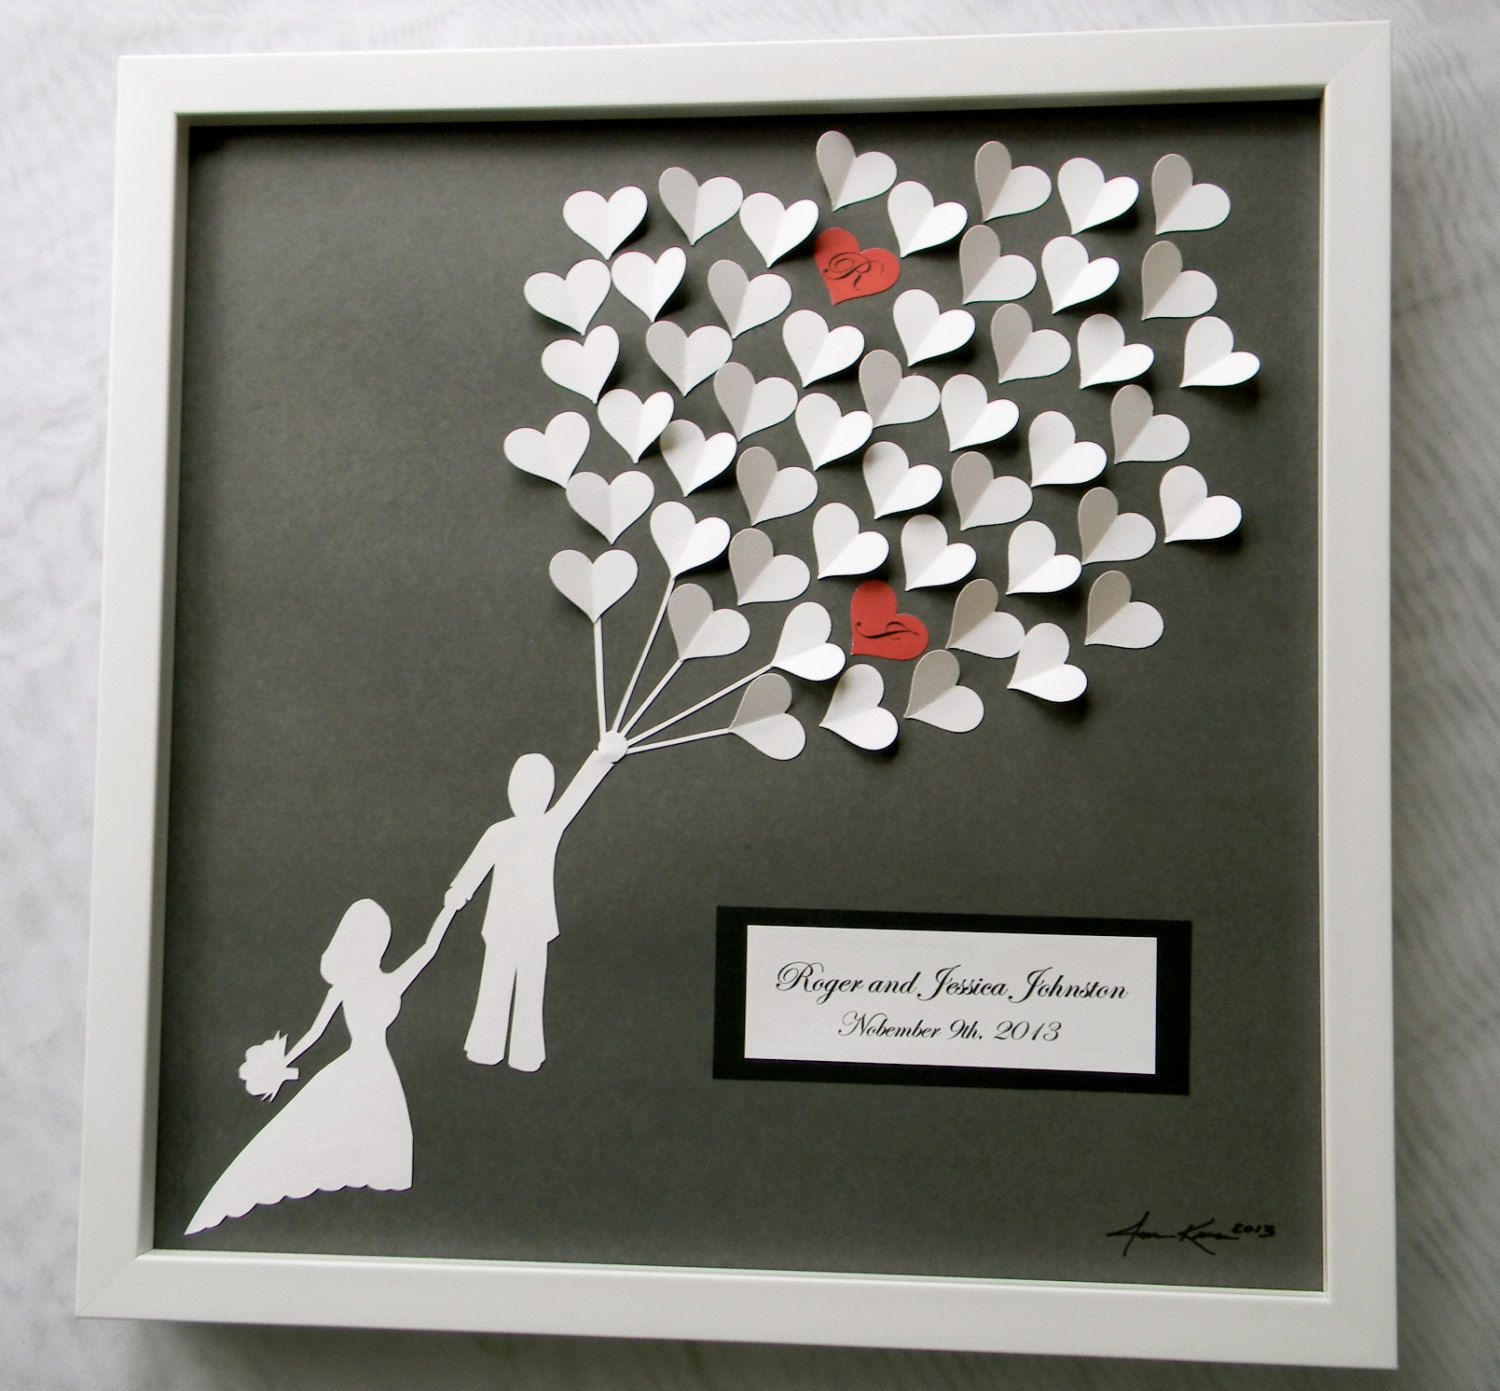 wedding gifts for guests Wedding guest book alternative 3D paper hearts lovely bridal shower gift modern guestbook for the bride and groom great gift